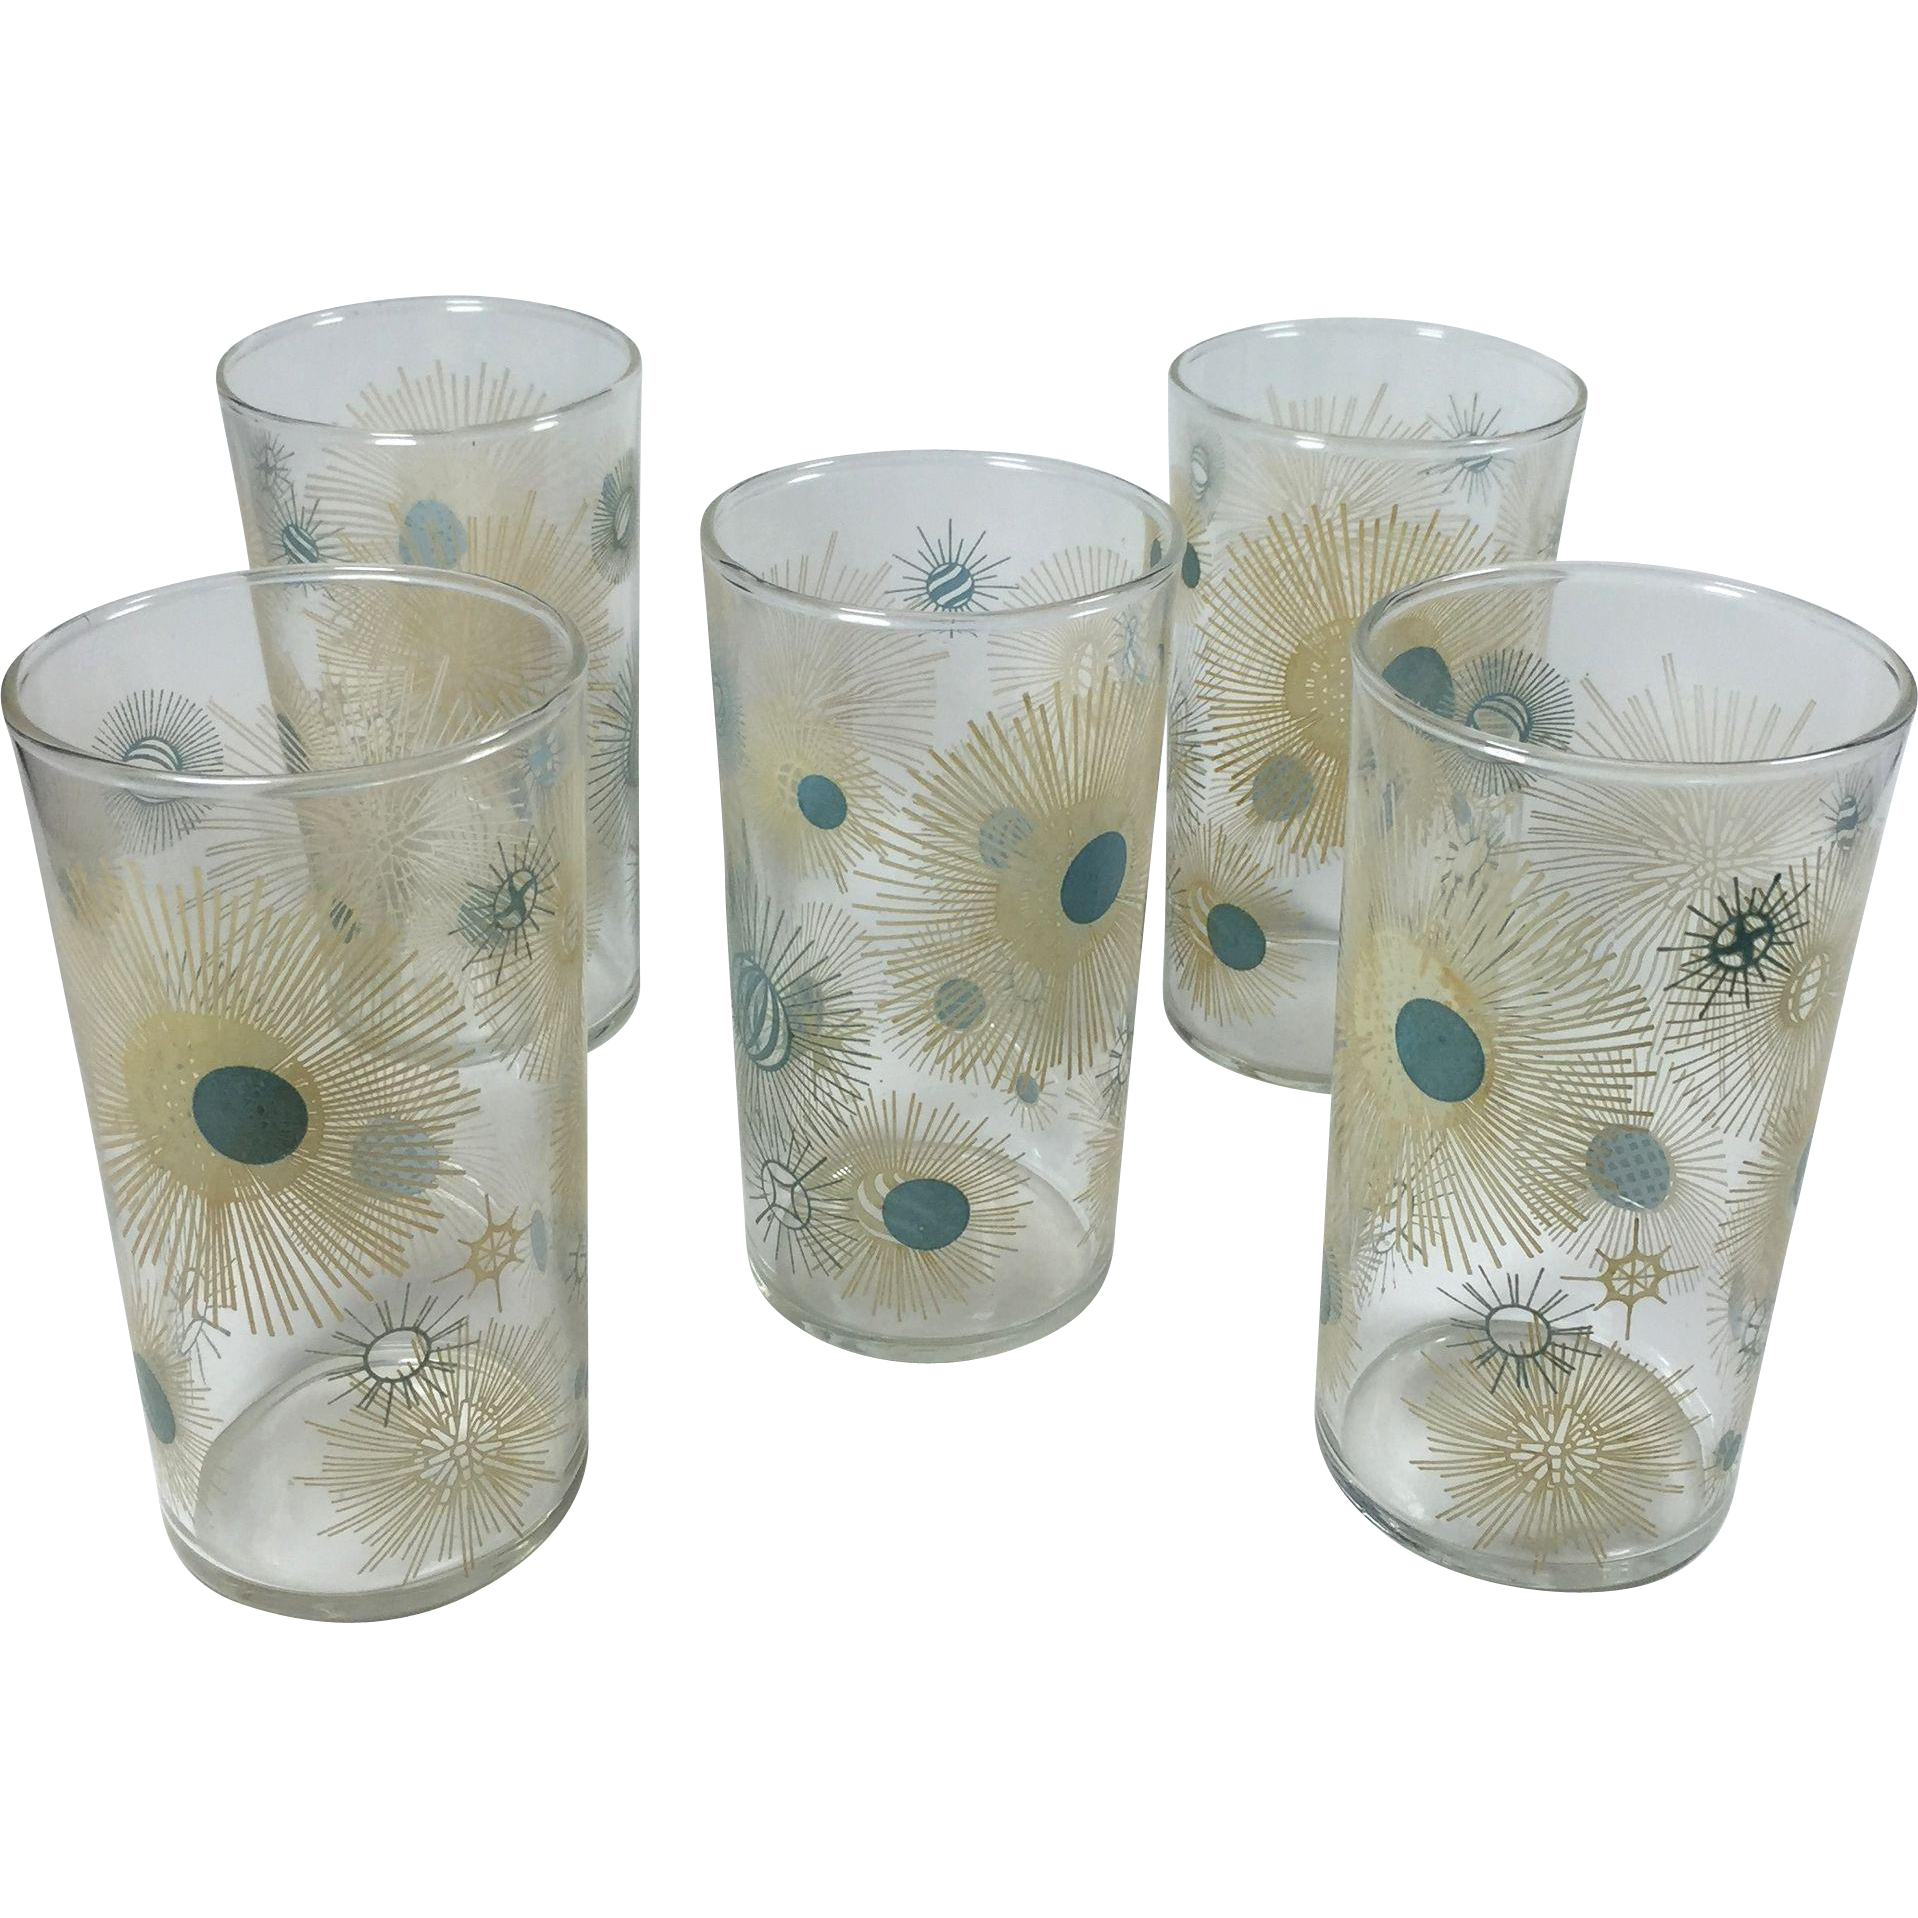 Vintage Beverage Glasses Atomic Sunburst Beverage Glasses Turquoise Tan